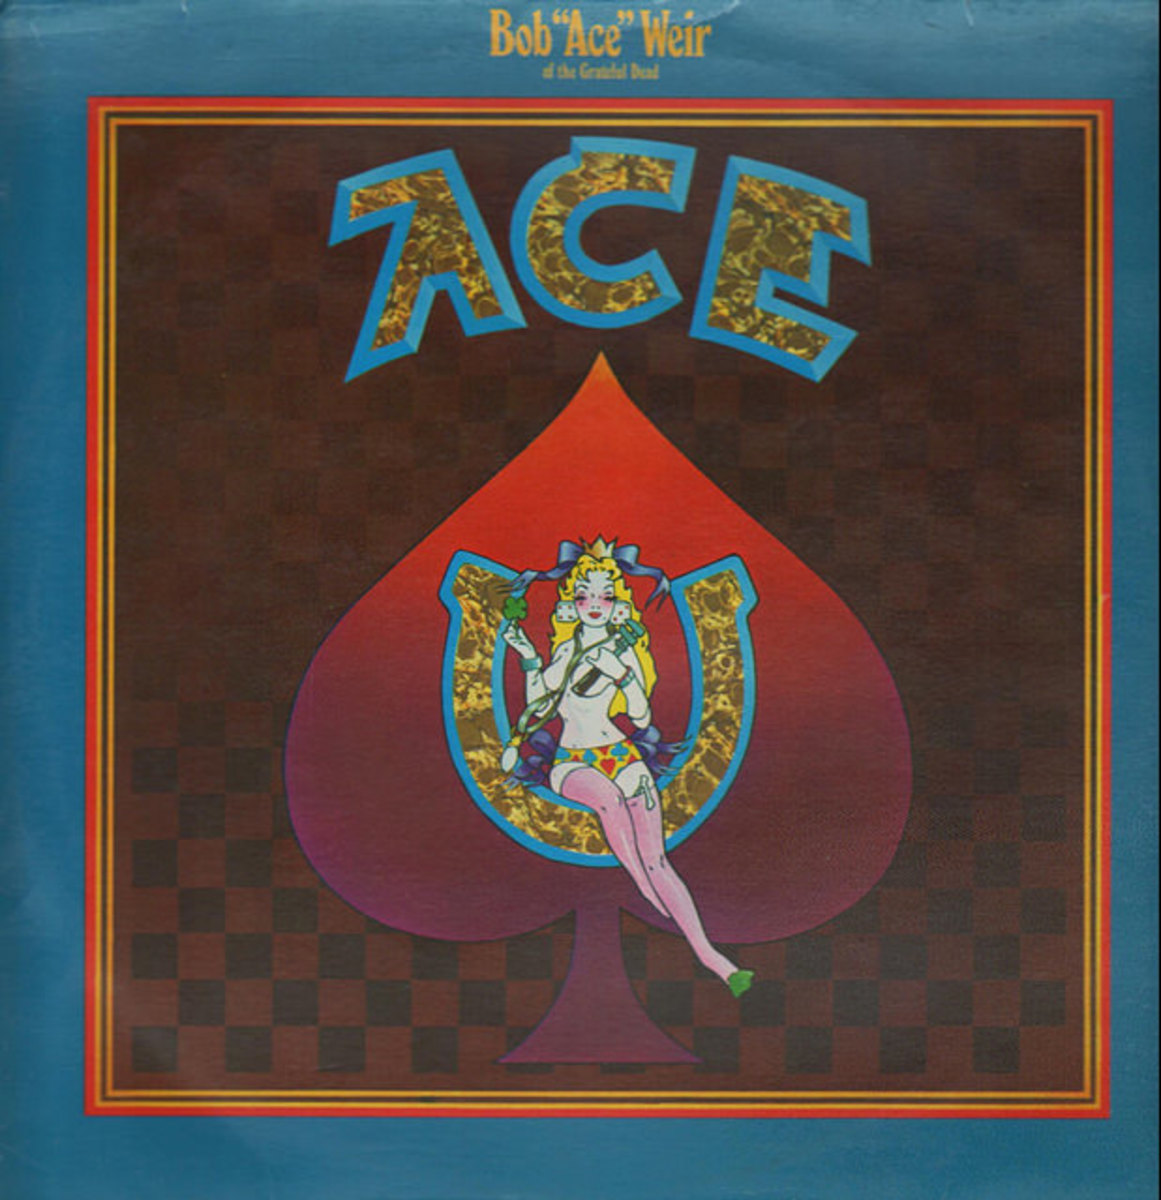 "Bob Weir ""Ace"" Warner Brothers Records BS 2627 12"" LP Vinyl Record US Pressing (1972) Album Cover Art by Alton Kelley & Stanley Mouse"